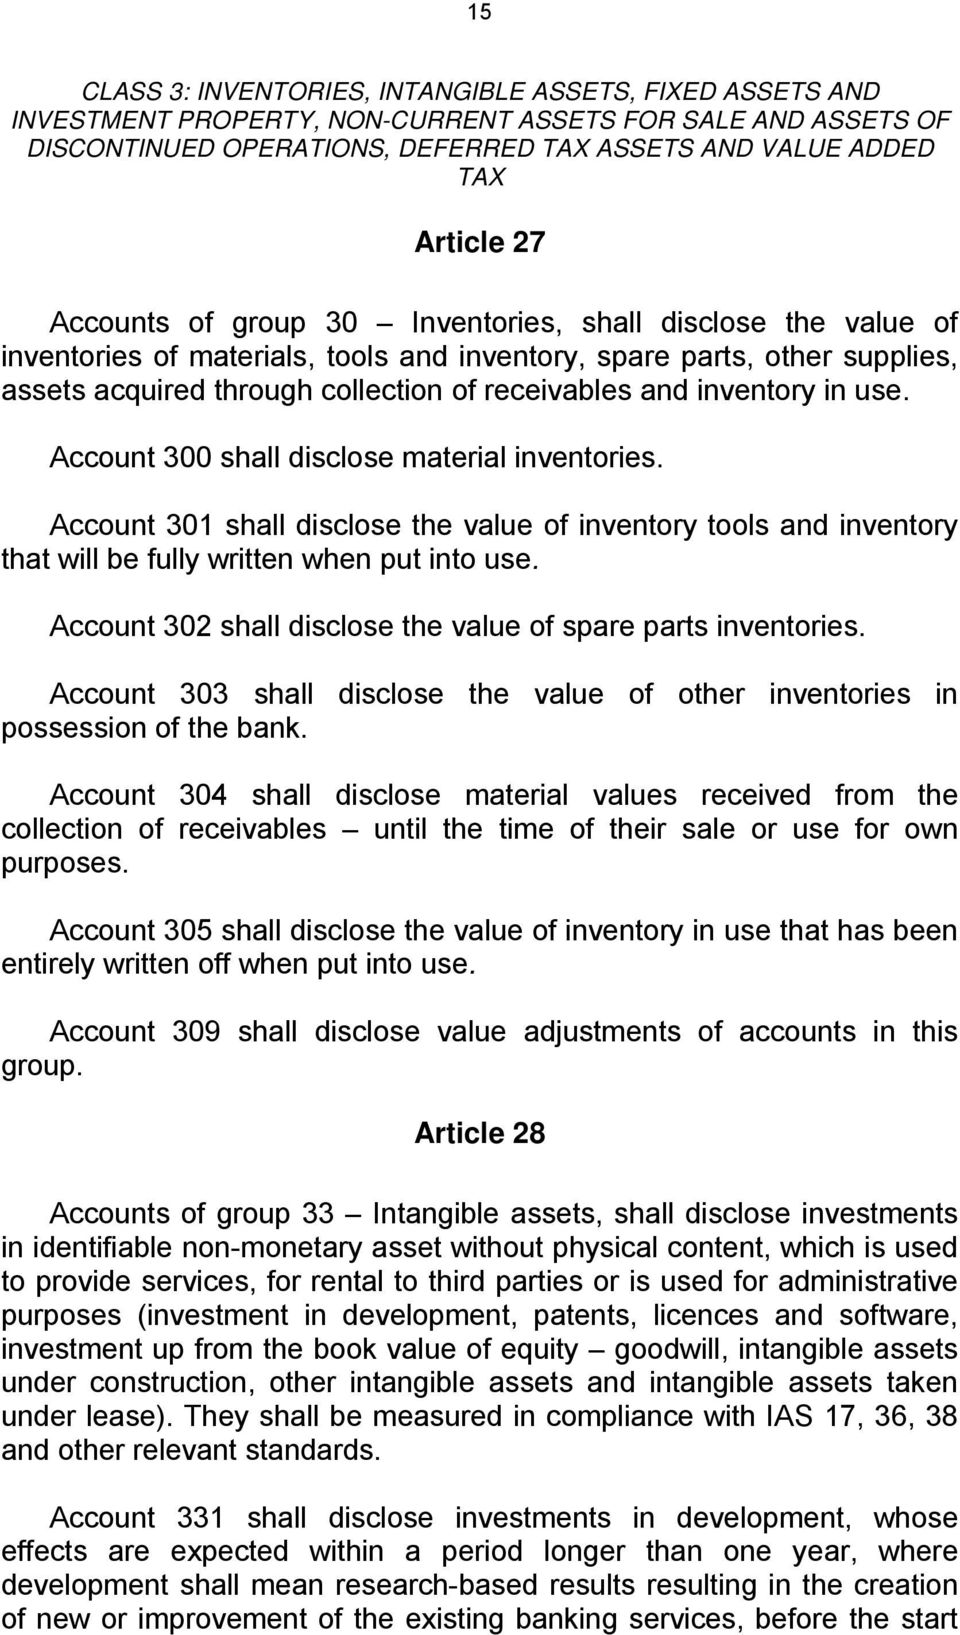 inventory in use. Account 300 shall disclose material inventories. Account 301 shall disclose the value of inventory tools and inventory that will be fully written when put into use.